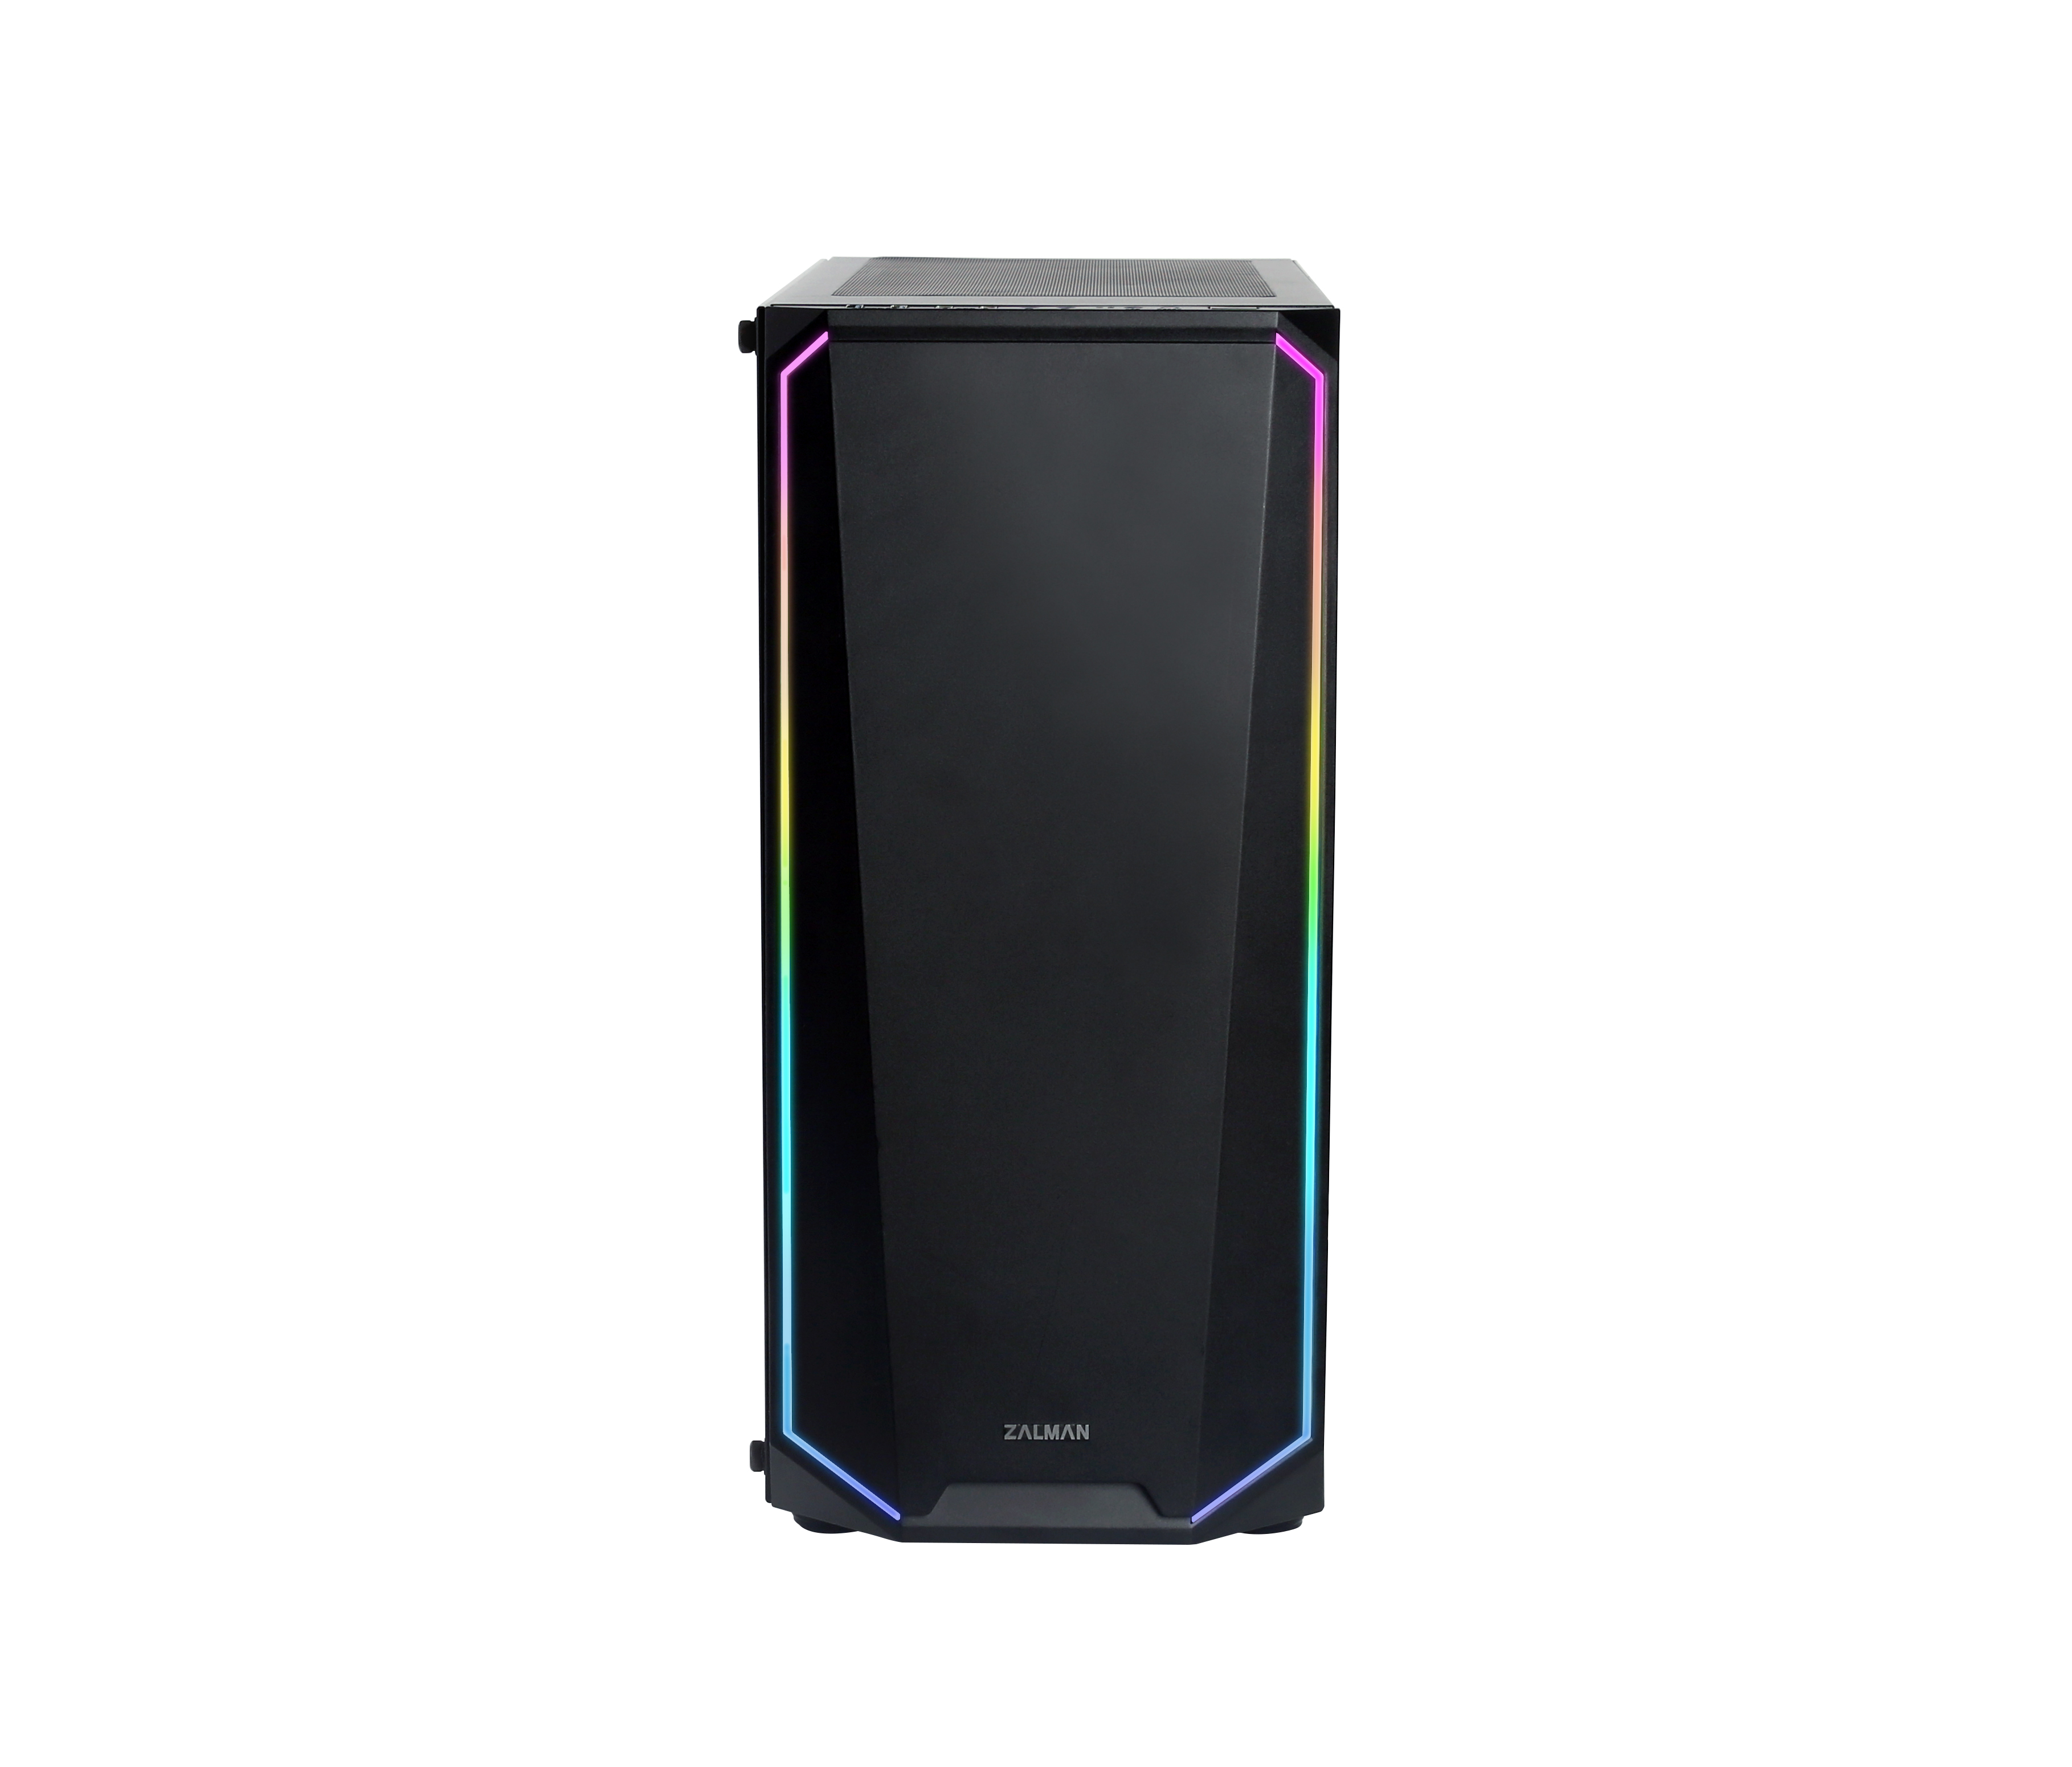 Zalman K1 Rev.A, ATX Mid-Tower Case / RGB spectrum light on the edge of front / Pre-installed: 120mm Auto RGB fan in rear, 120mm black fan in front Tempered glass on left side, Compatible with 360mm AIO water cooler, Dimension : 458(D) x 210(W) x 450